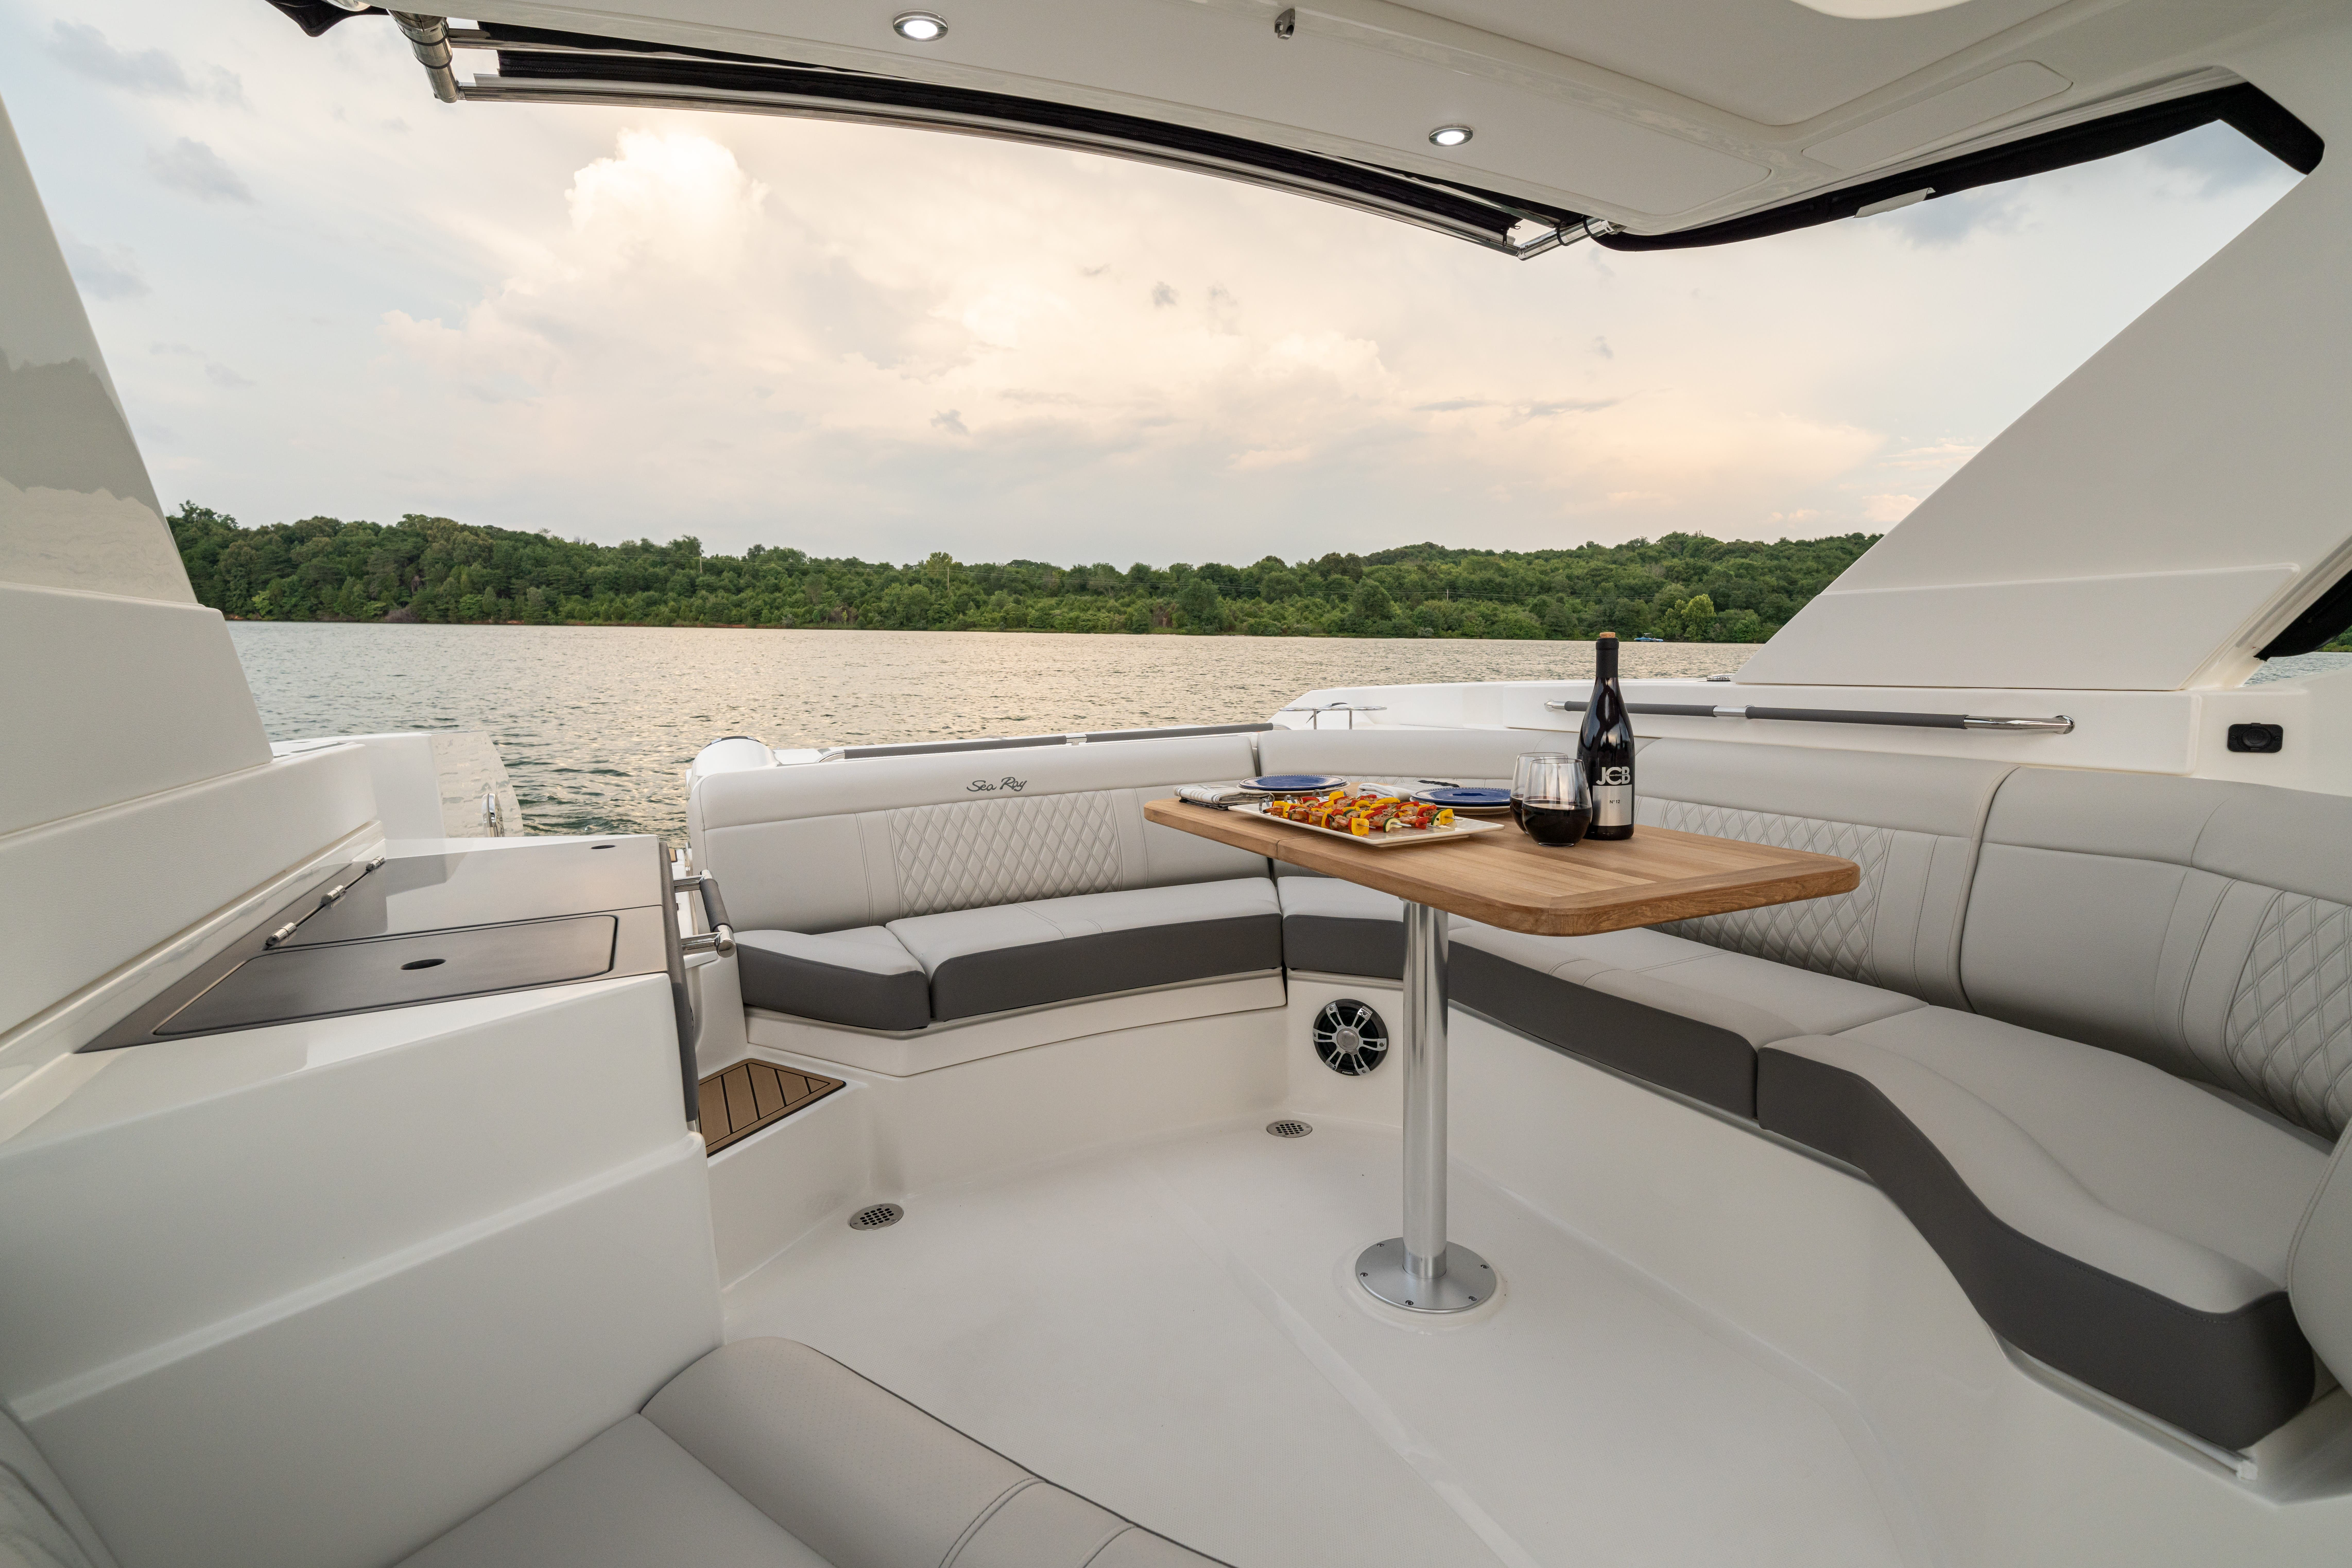 2022 Sea Ray boat for sale, model of the boat is 350slx & Image # 10 of 11